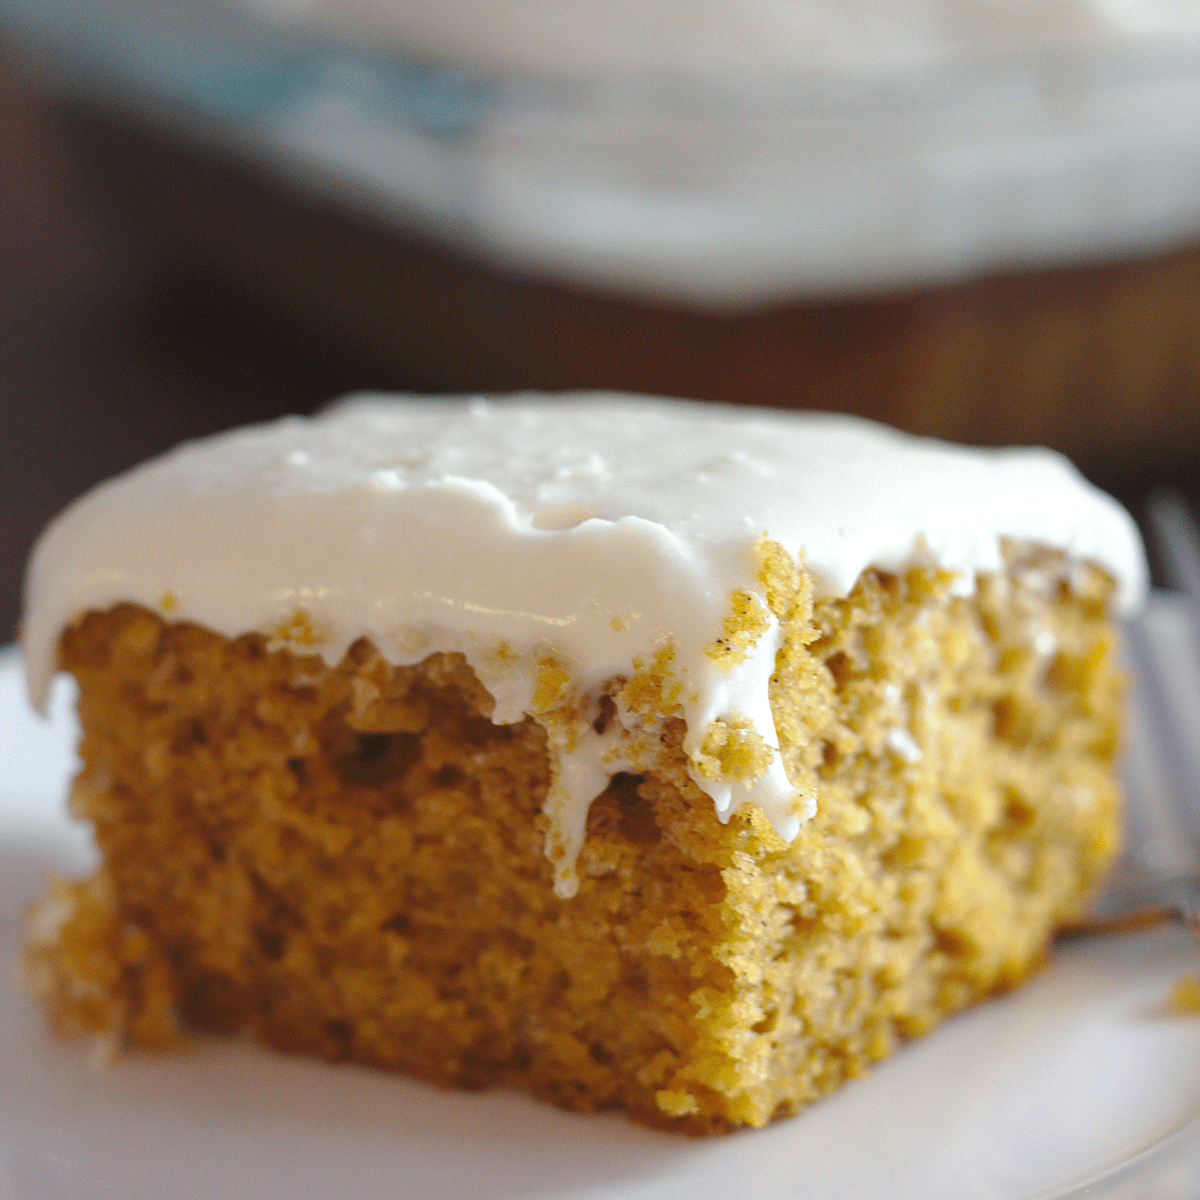 A slice of pumpkin cake on a plate.